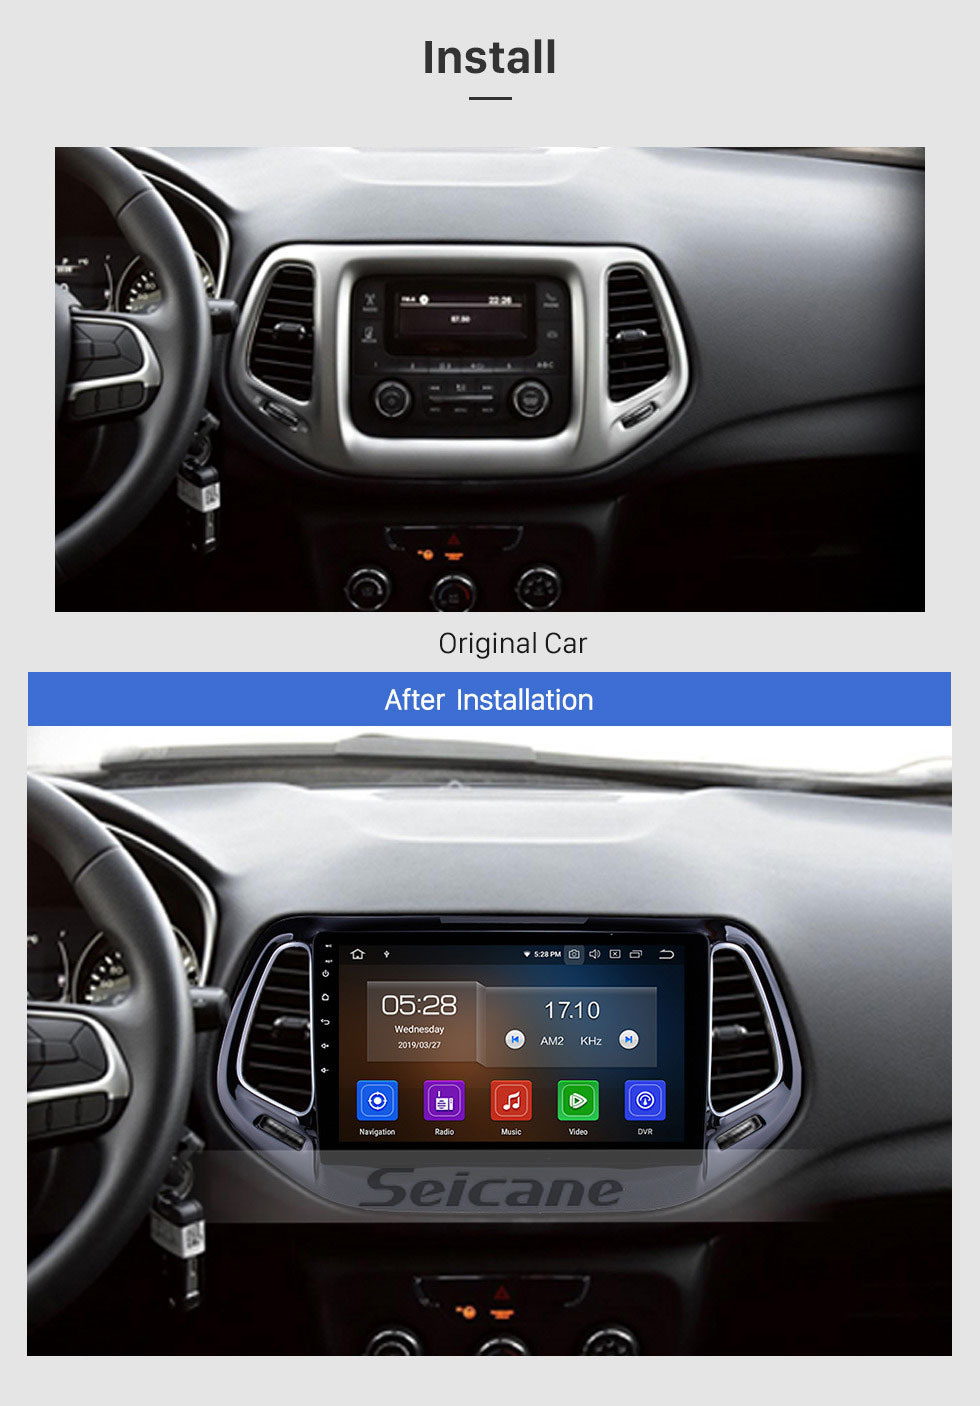 Seicane Android 10.0 Navegação GPS para 2017 Jeep Bússola de 10.1 polegada HD Touchscreen Multimídia de Rádio Bluetooth MP5 música Mirror Link WIFI suporte USB 4G Carplay SWC OBD2 Retrovisor